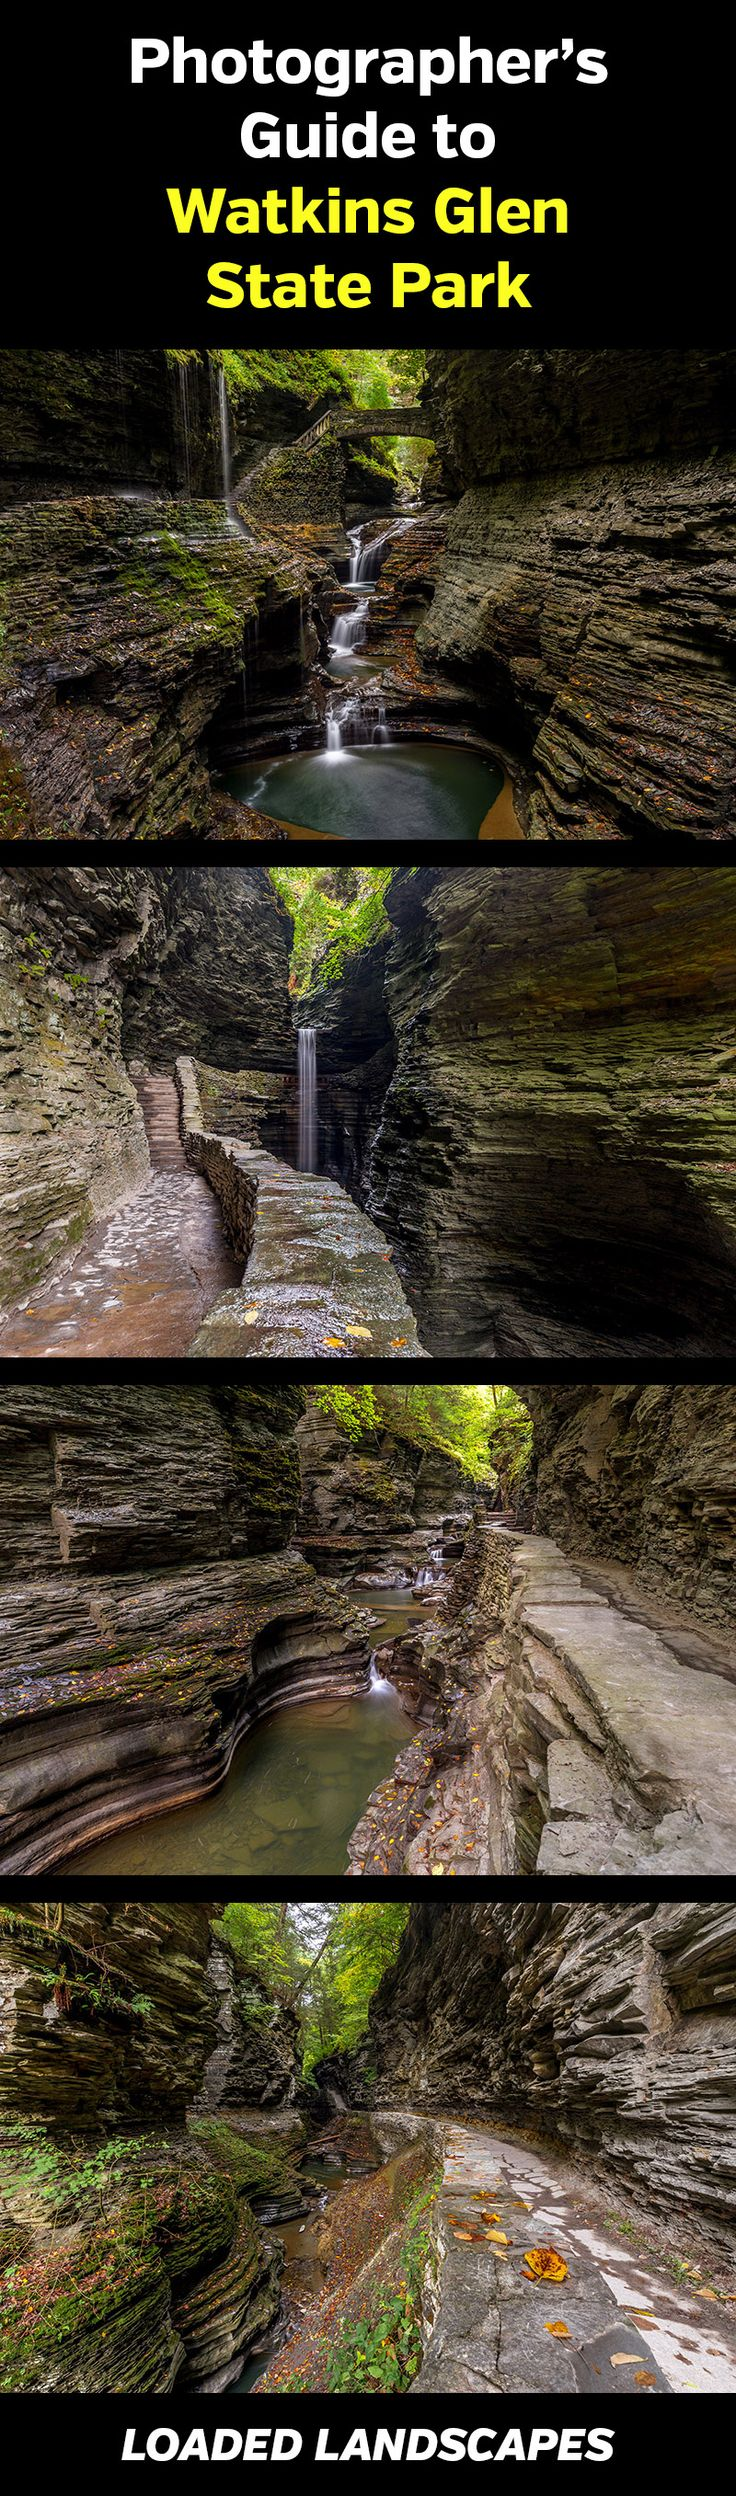 Guide to Photographing Watkins Glen State Park (New York)